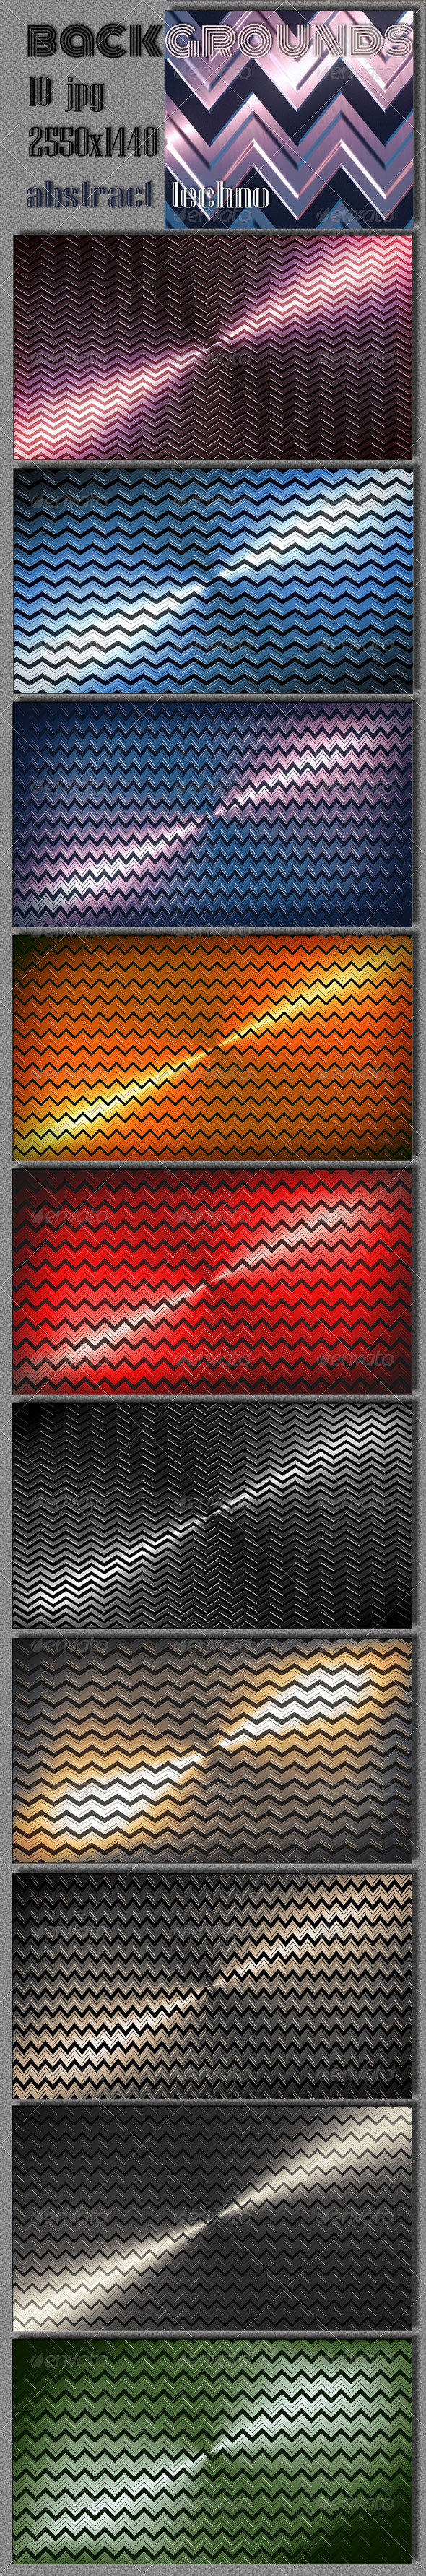 Techno Zigzag Backgrounds - 3D Backgrounds